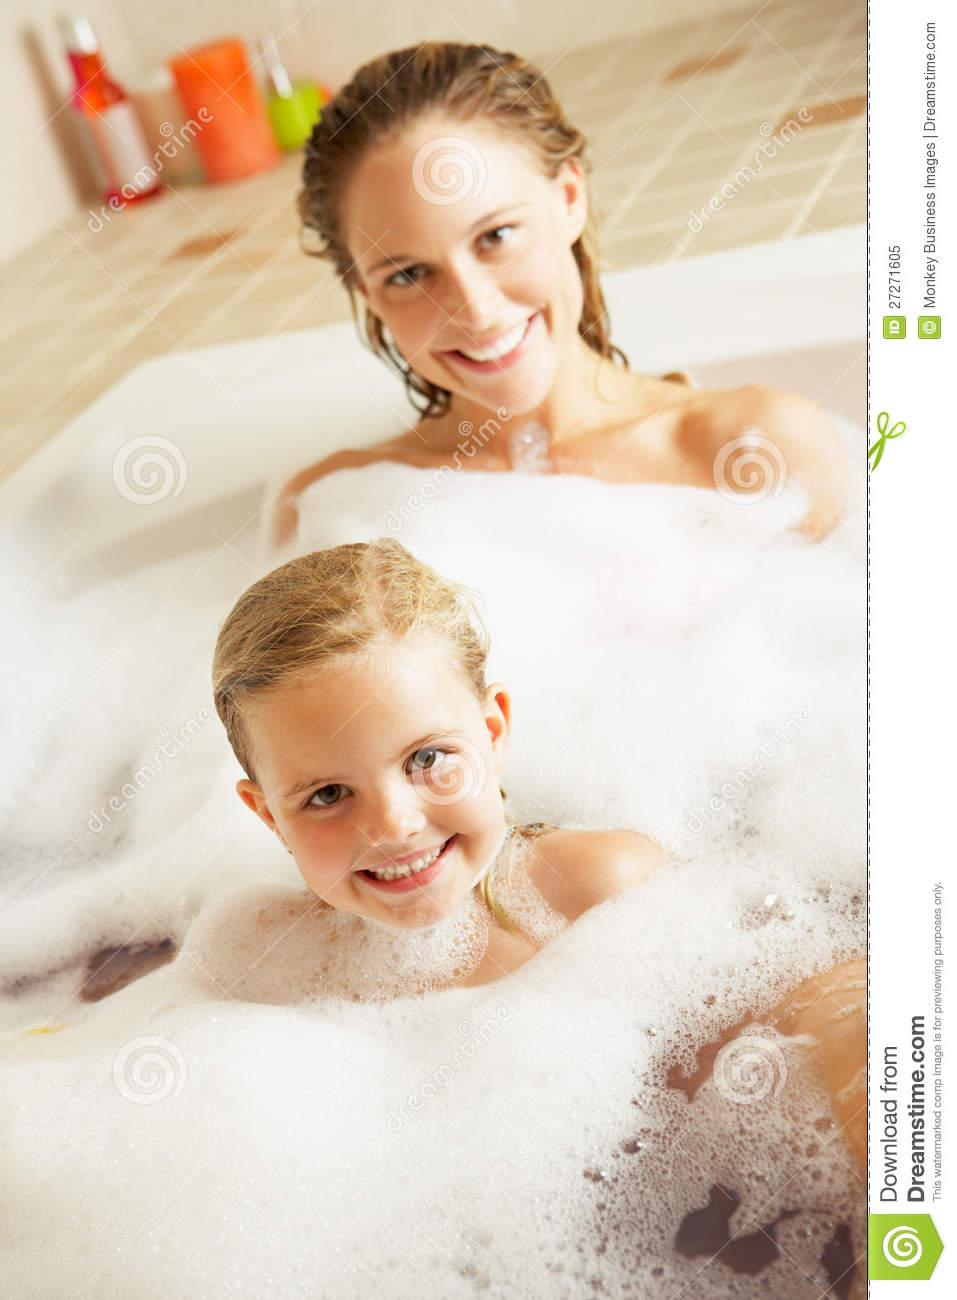 Mom and daughter naked in bath #10